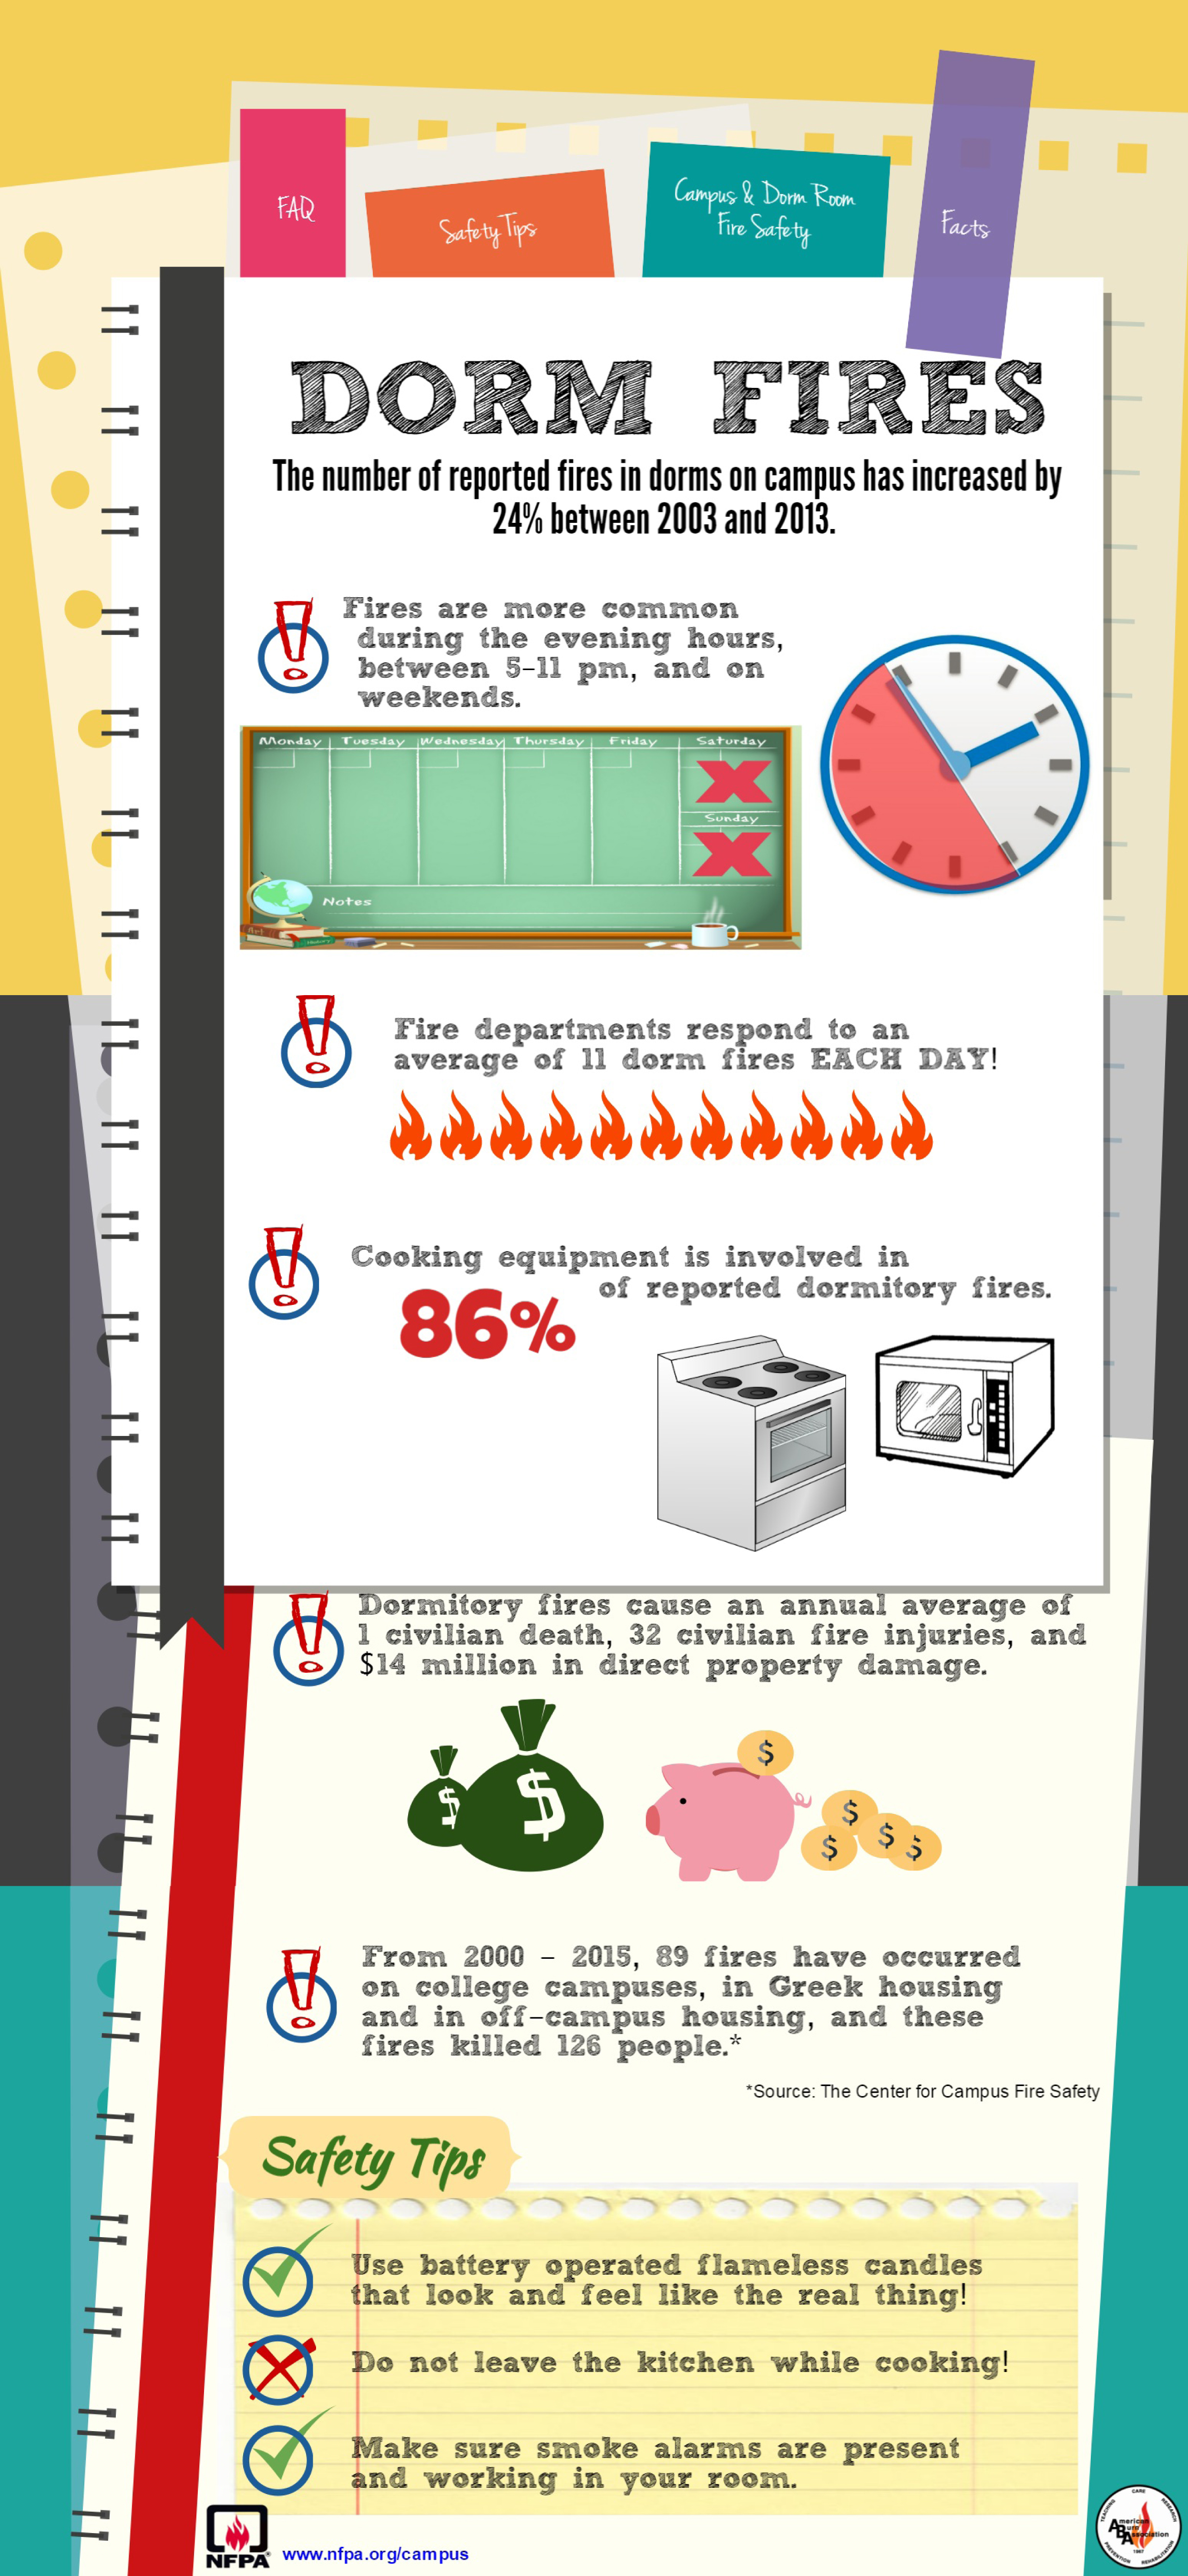 NFPA - Campus and dorm fires